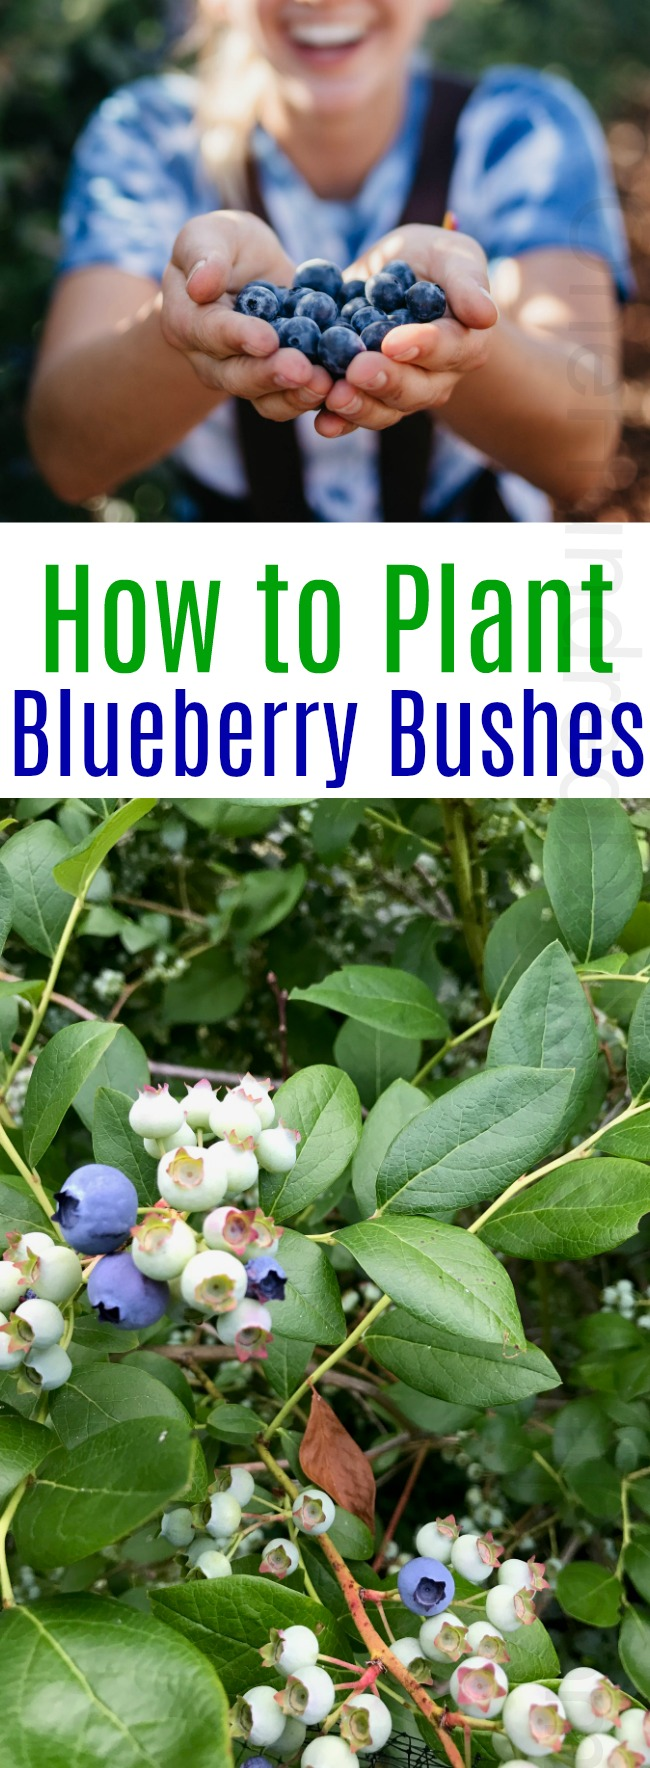 How to Plant a Blueberry Bush